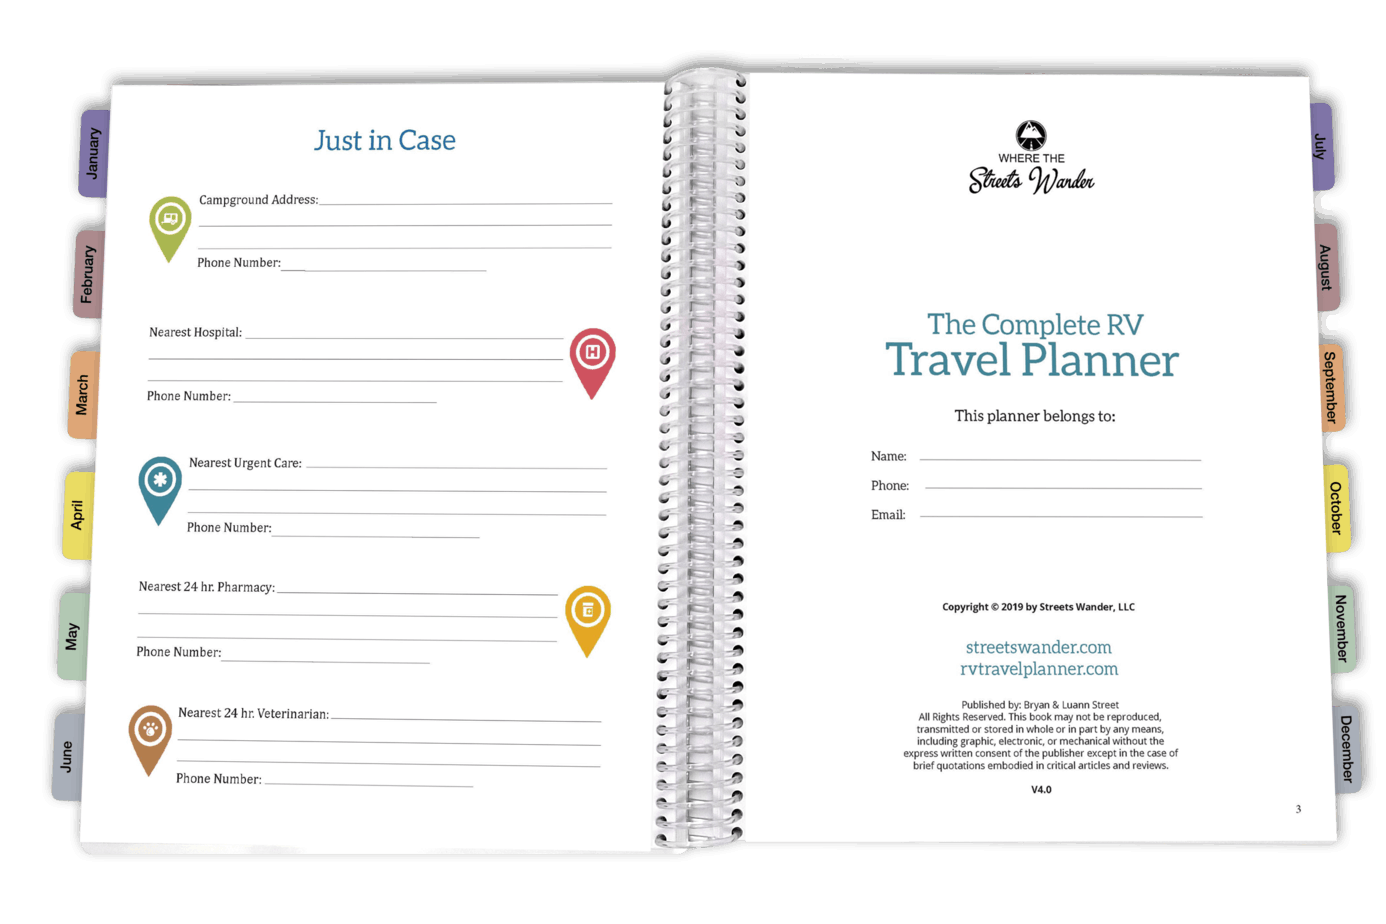 Inside RV Travel Planner Just in Case